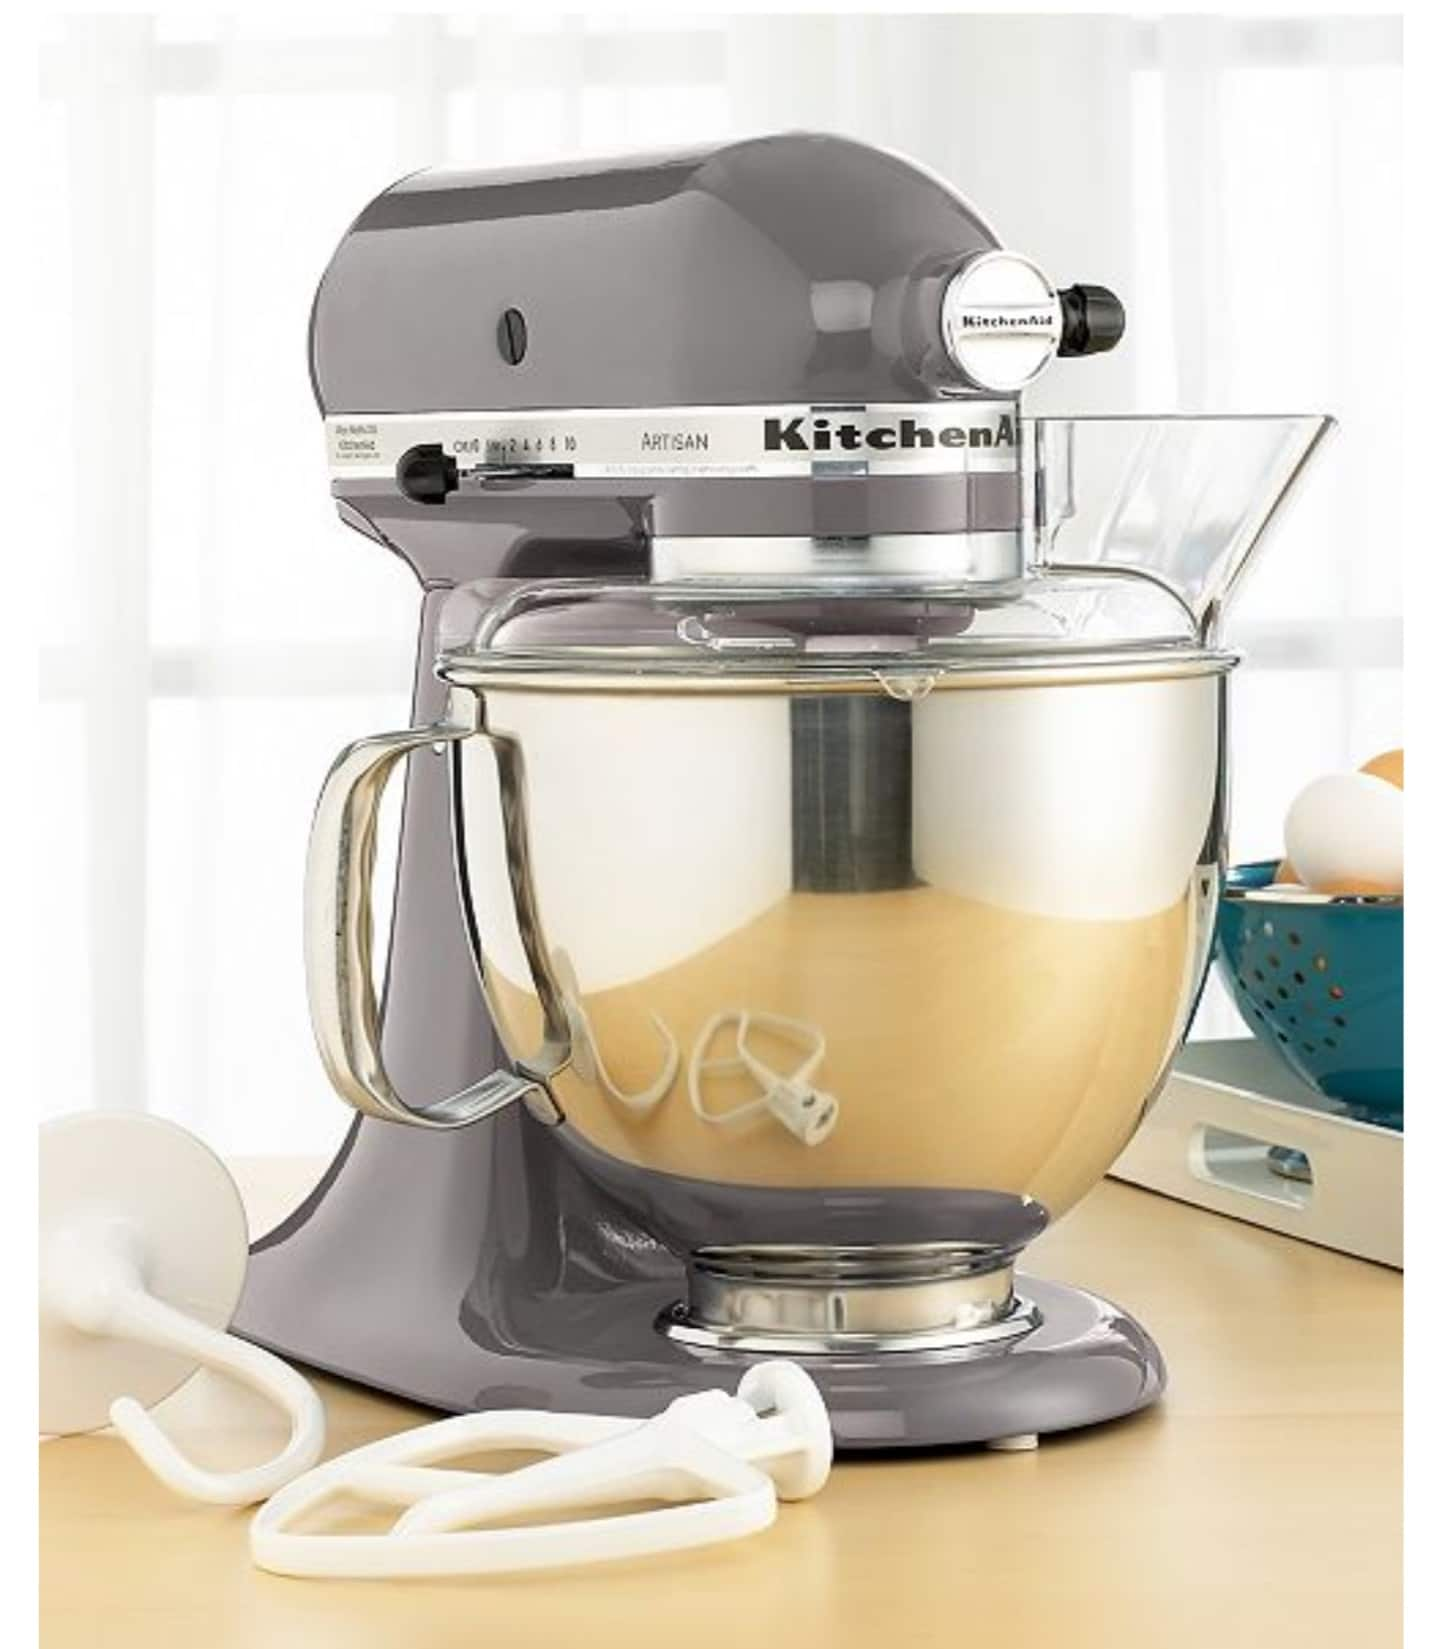 Kitchenaid Artisan 5qt Stand Mixer In Silver Metallic Only